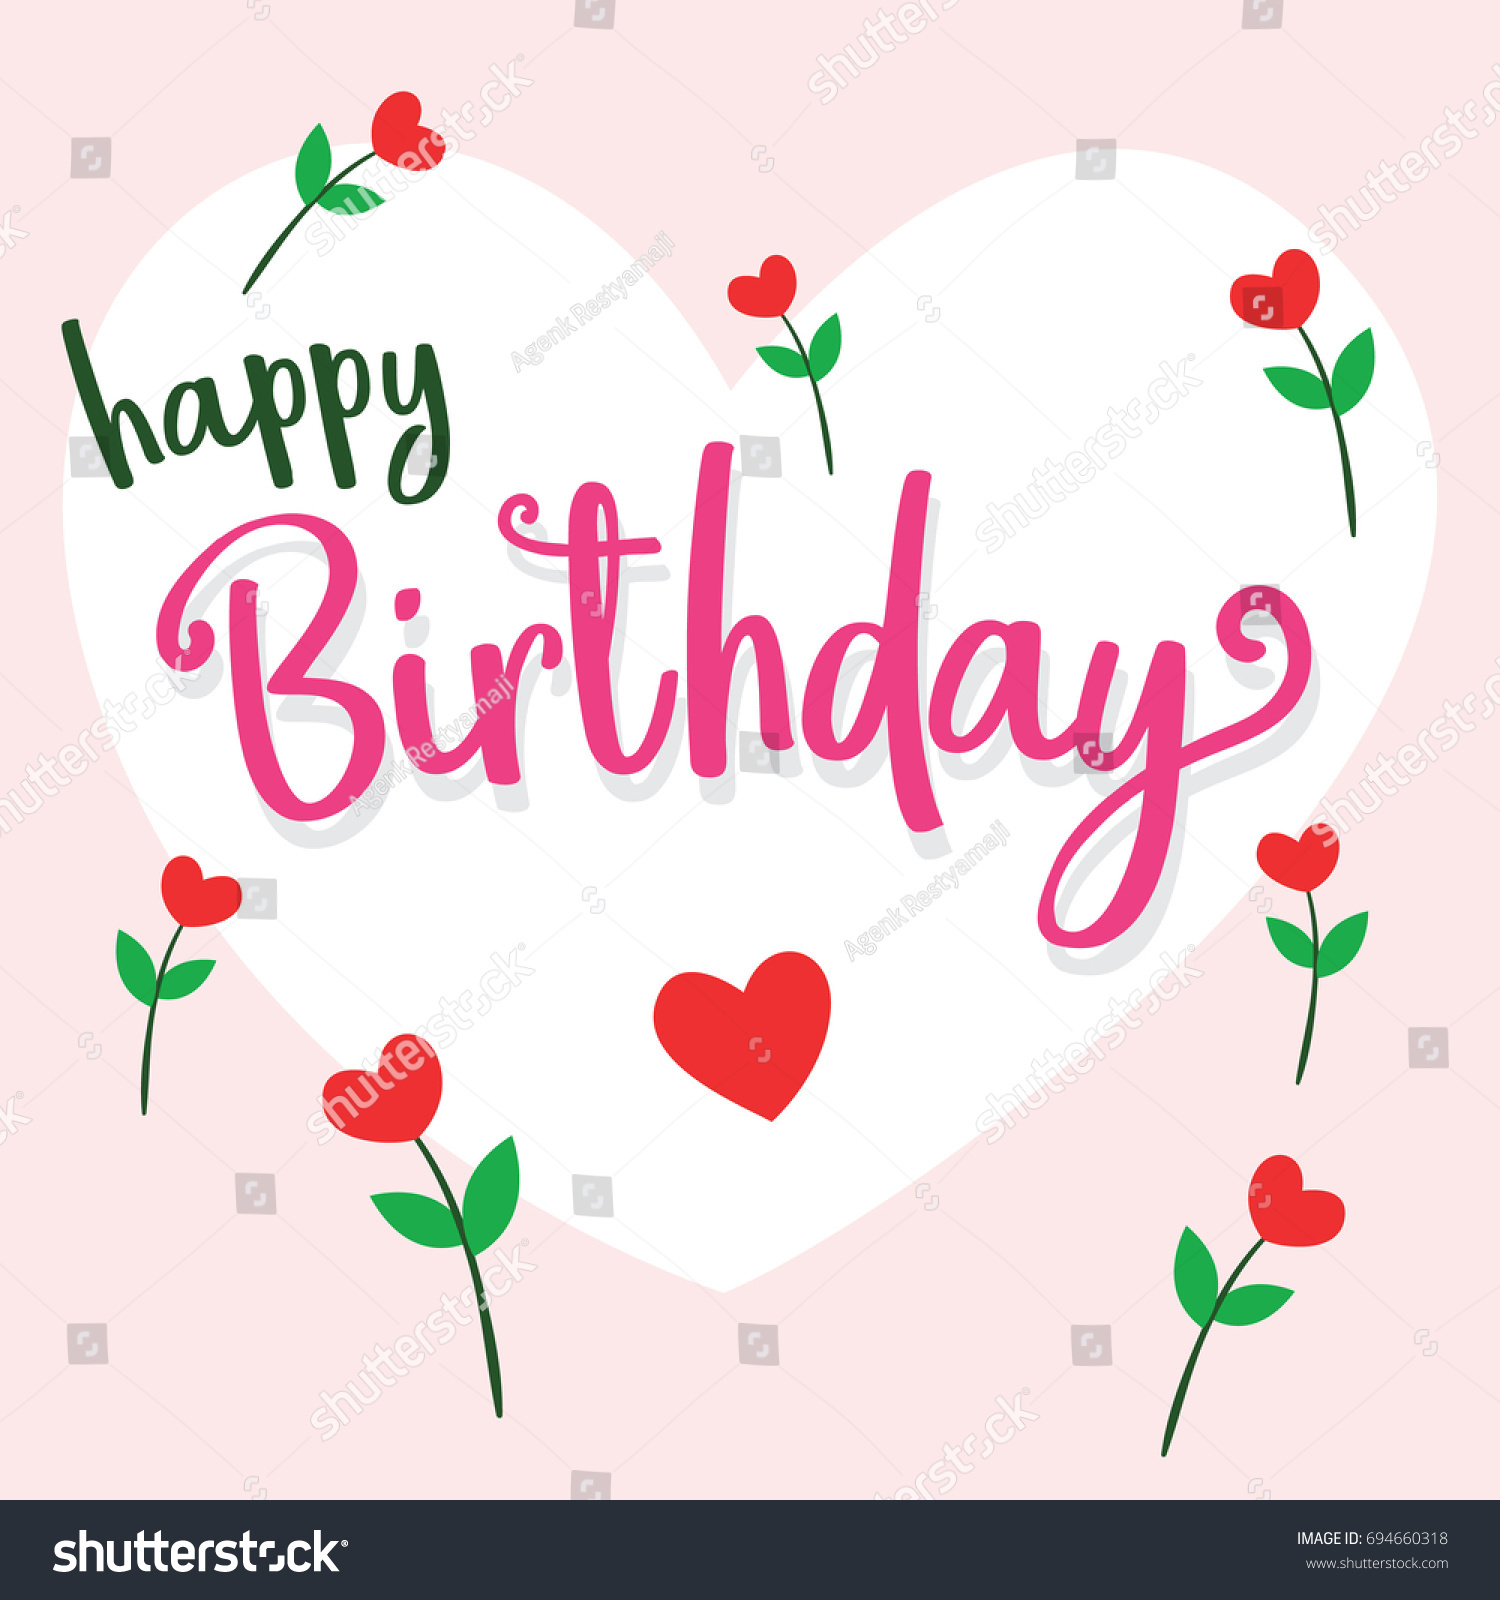 happy birthday to someone special ; stock-vector-happy-birthday-for-someone-special-694660318-1